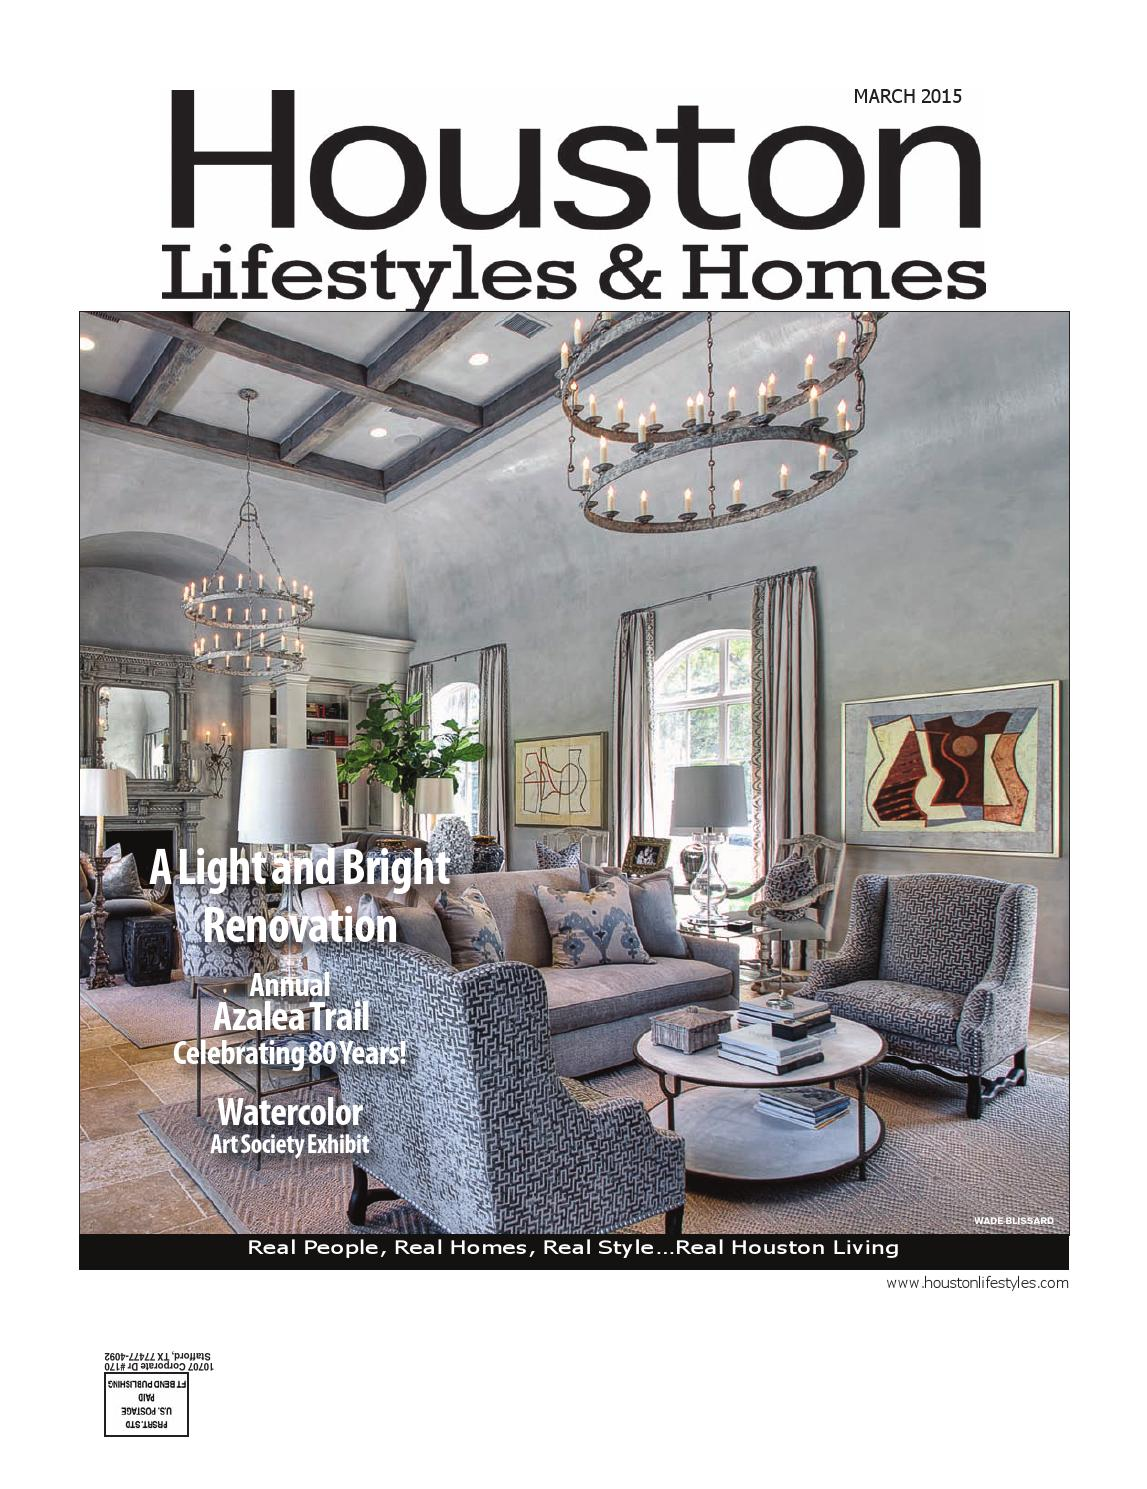 Watercolor art society houston tx - Houston Lifestyles Homes March 2015 By Lifestyles Homes Magazines Fort Bend Publishing Issuu